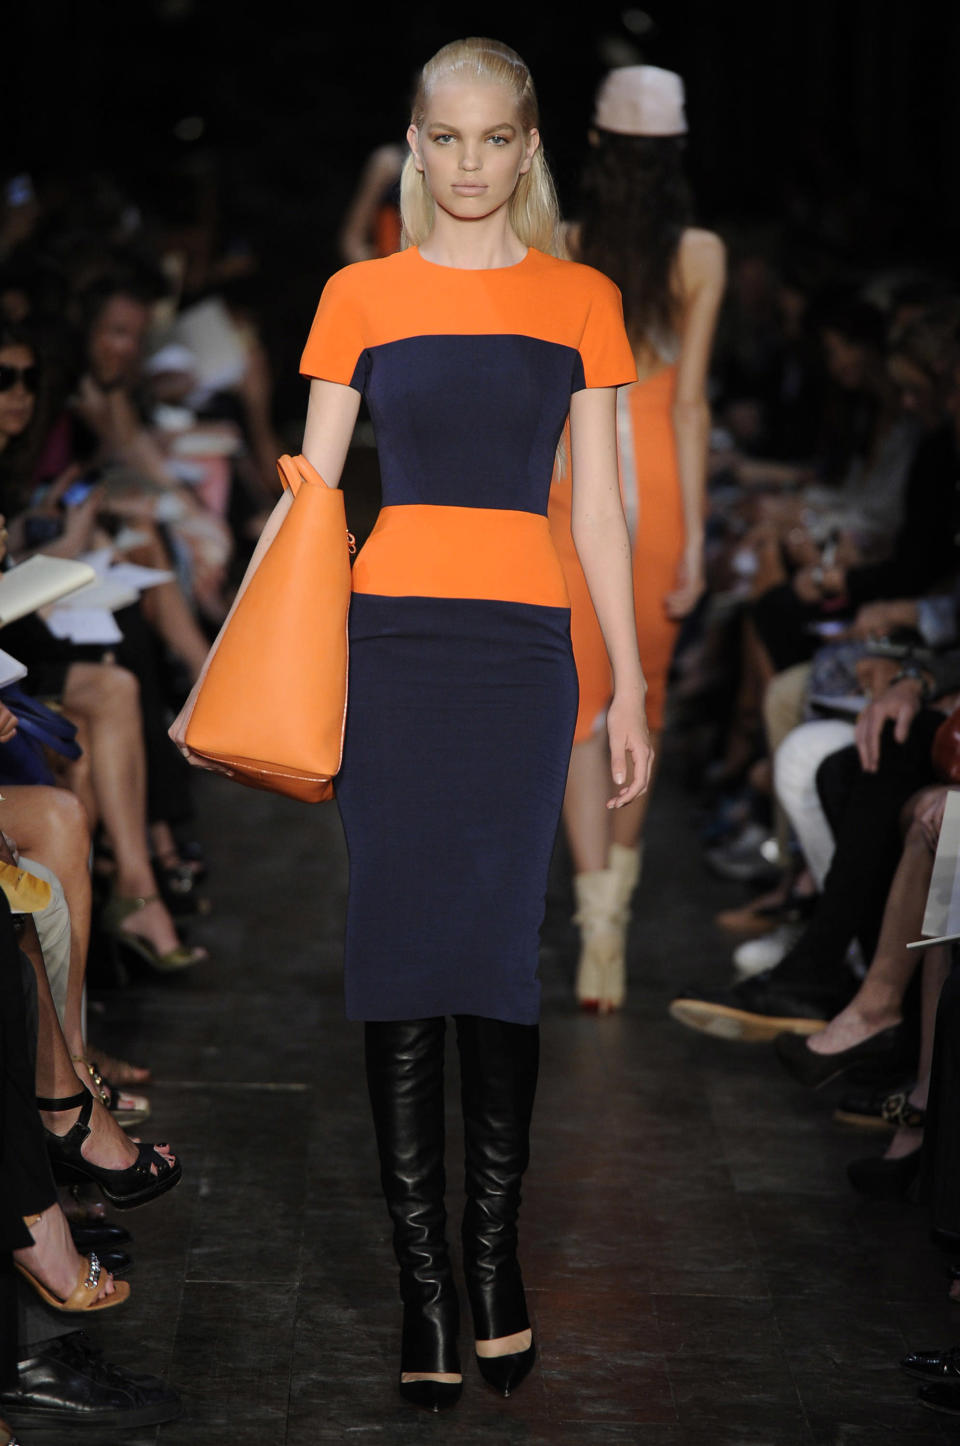 <p>On September 11 2011, Beckham showcased the SS12 collection and it was a swift move away from her signature figure-skimming looks. Instead, models graced the runway in A-line mini dresses and roomy anoraks. <em>[Photo: Getty]</em> </p>